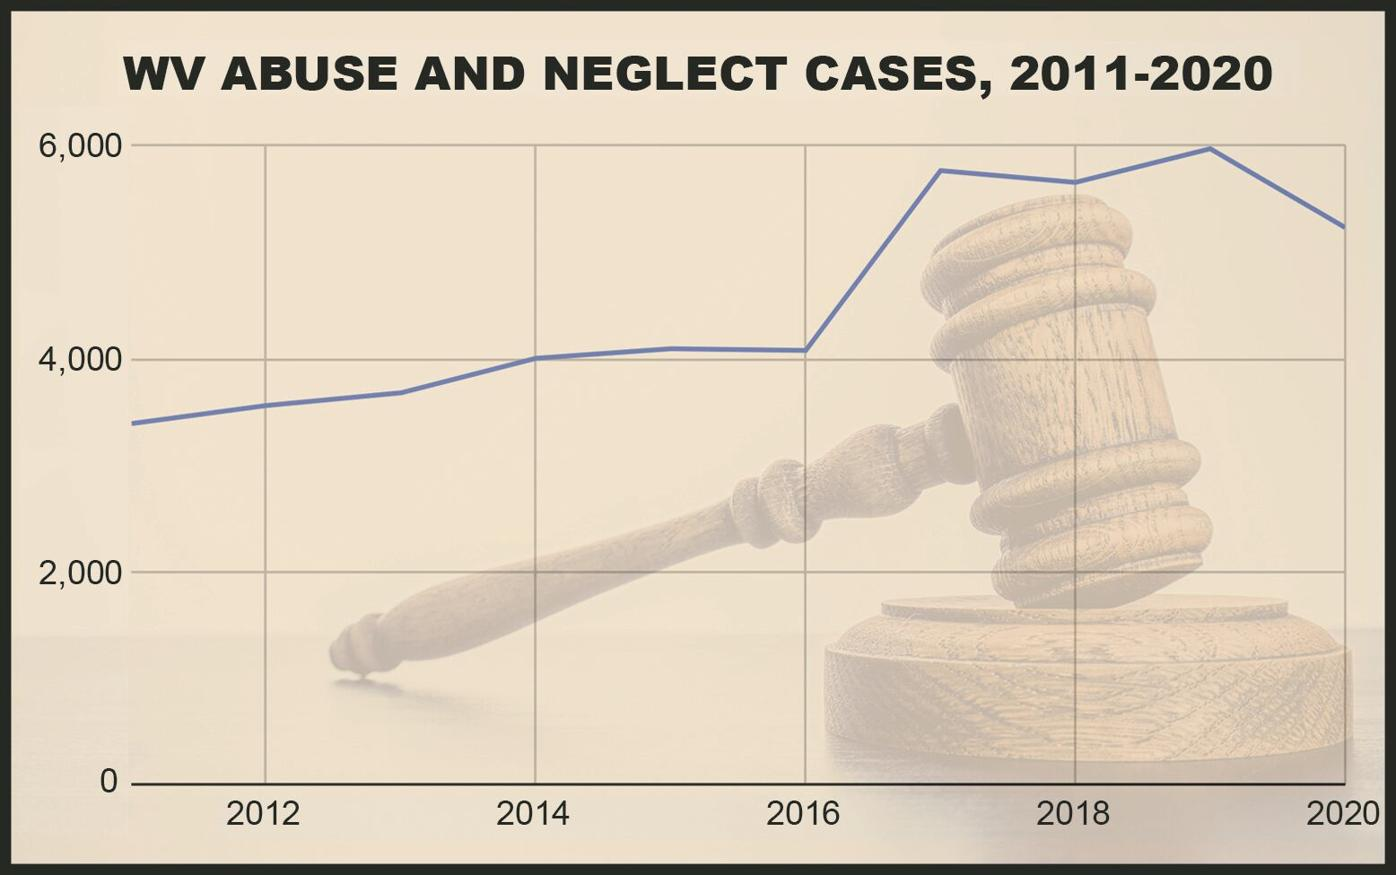 Abuse and neglect cases